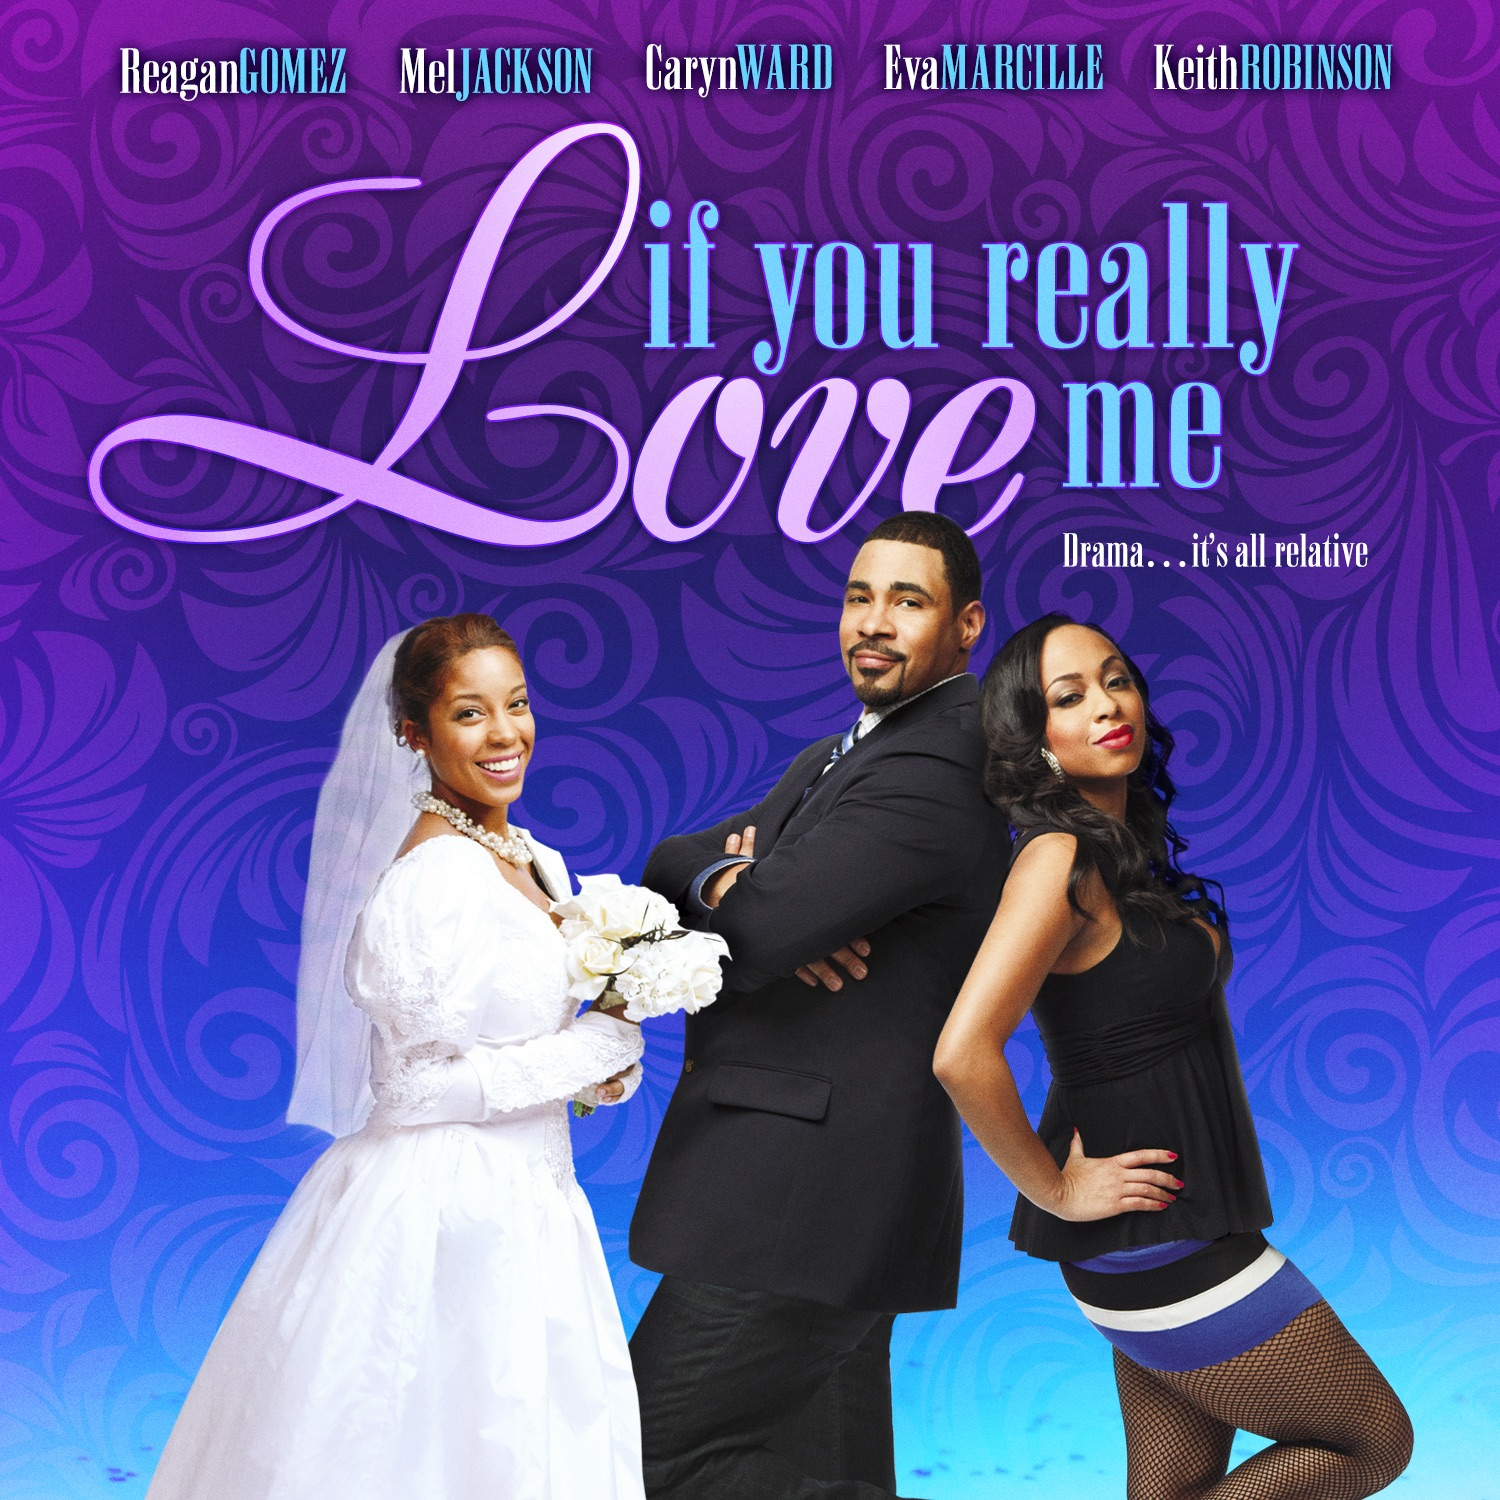 If You Really Love Me (feat. Reagan Gomez-Preston, Eva Marcille, Caryn Ward, Keith Robinson, Mel Jackson, DeEtta West & Anthony Edwards)